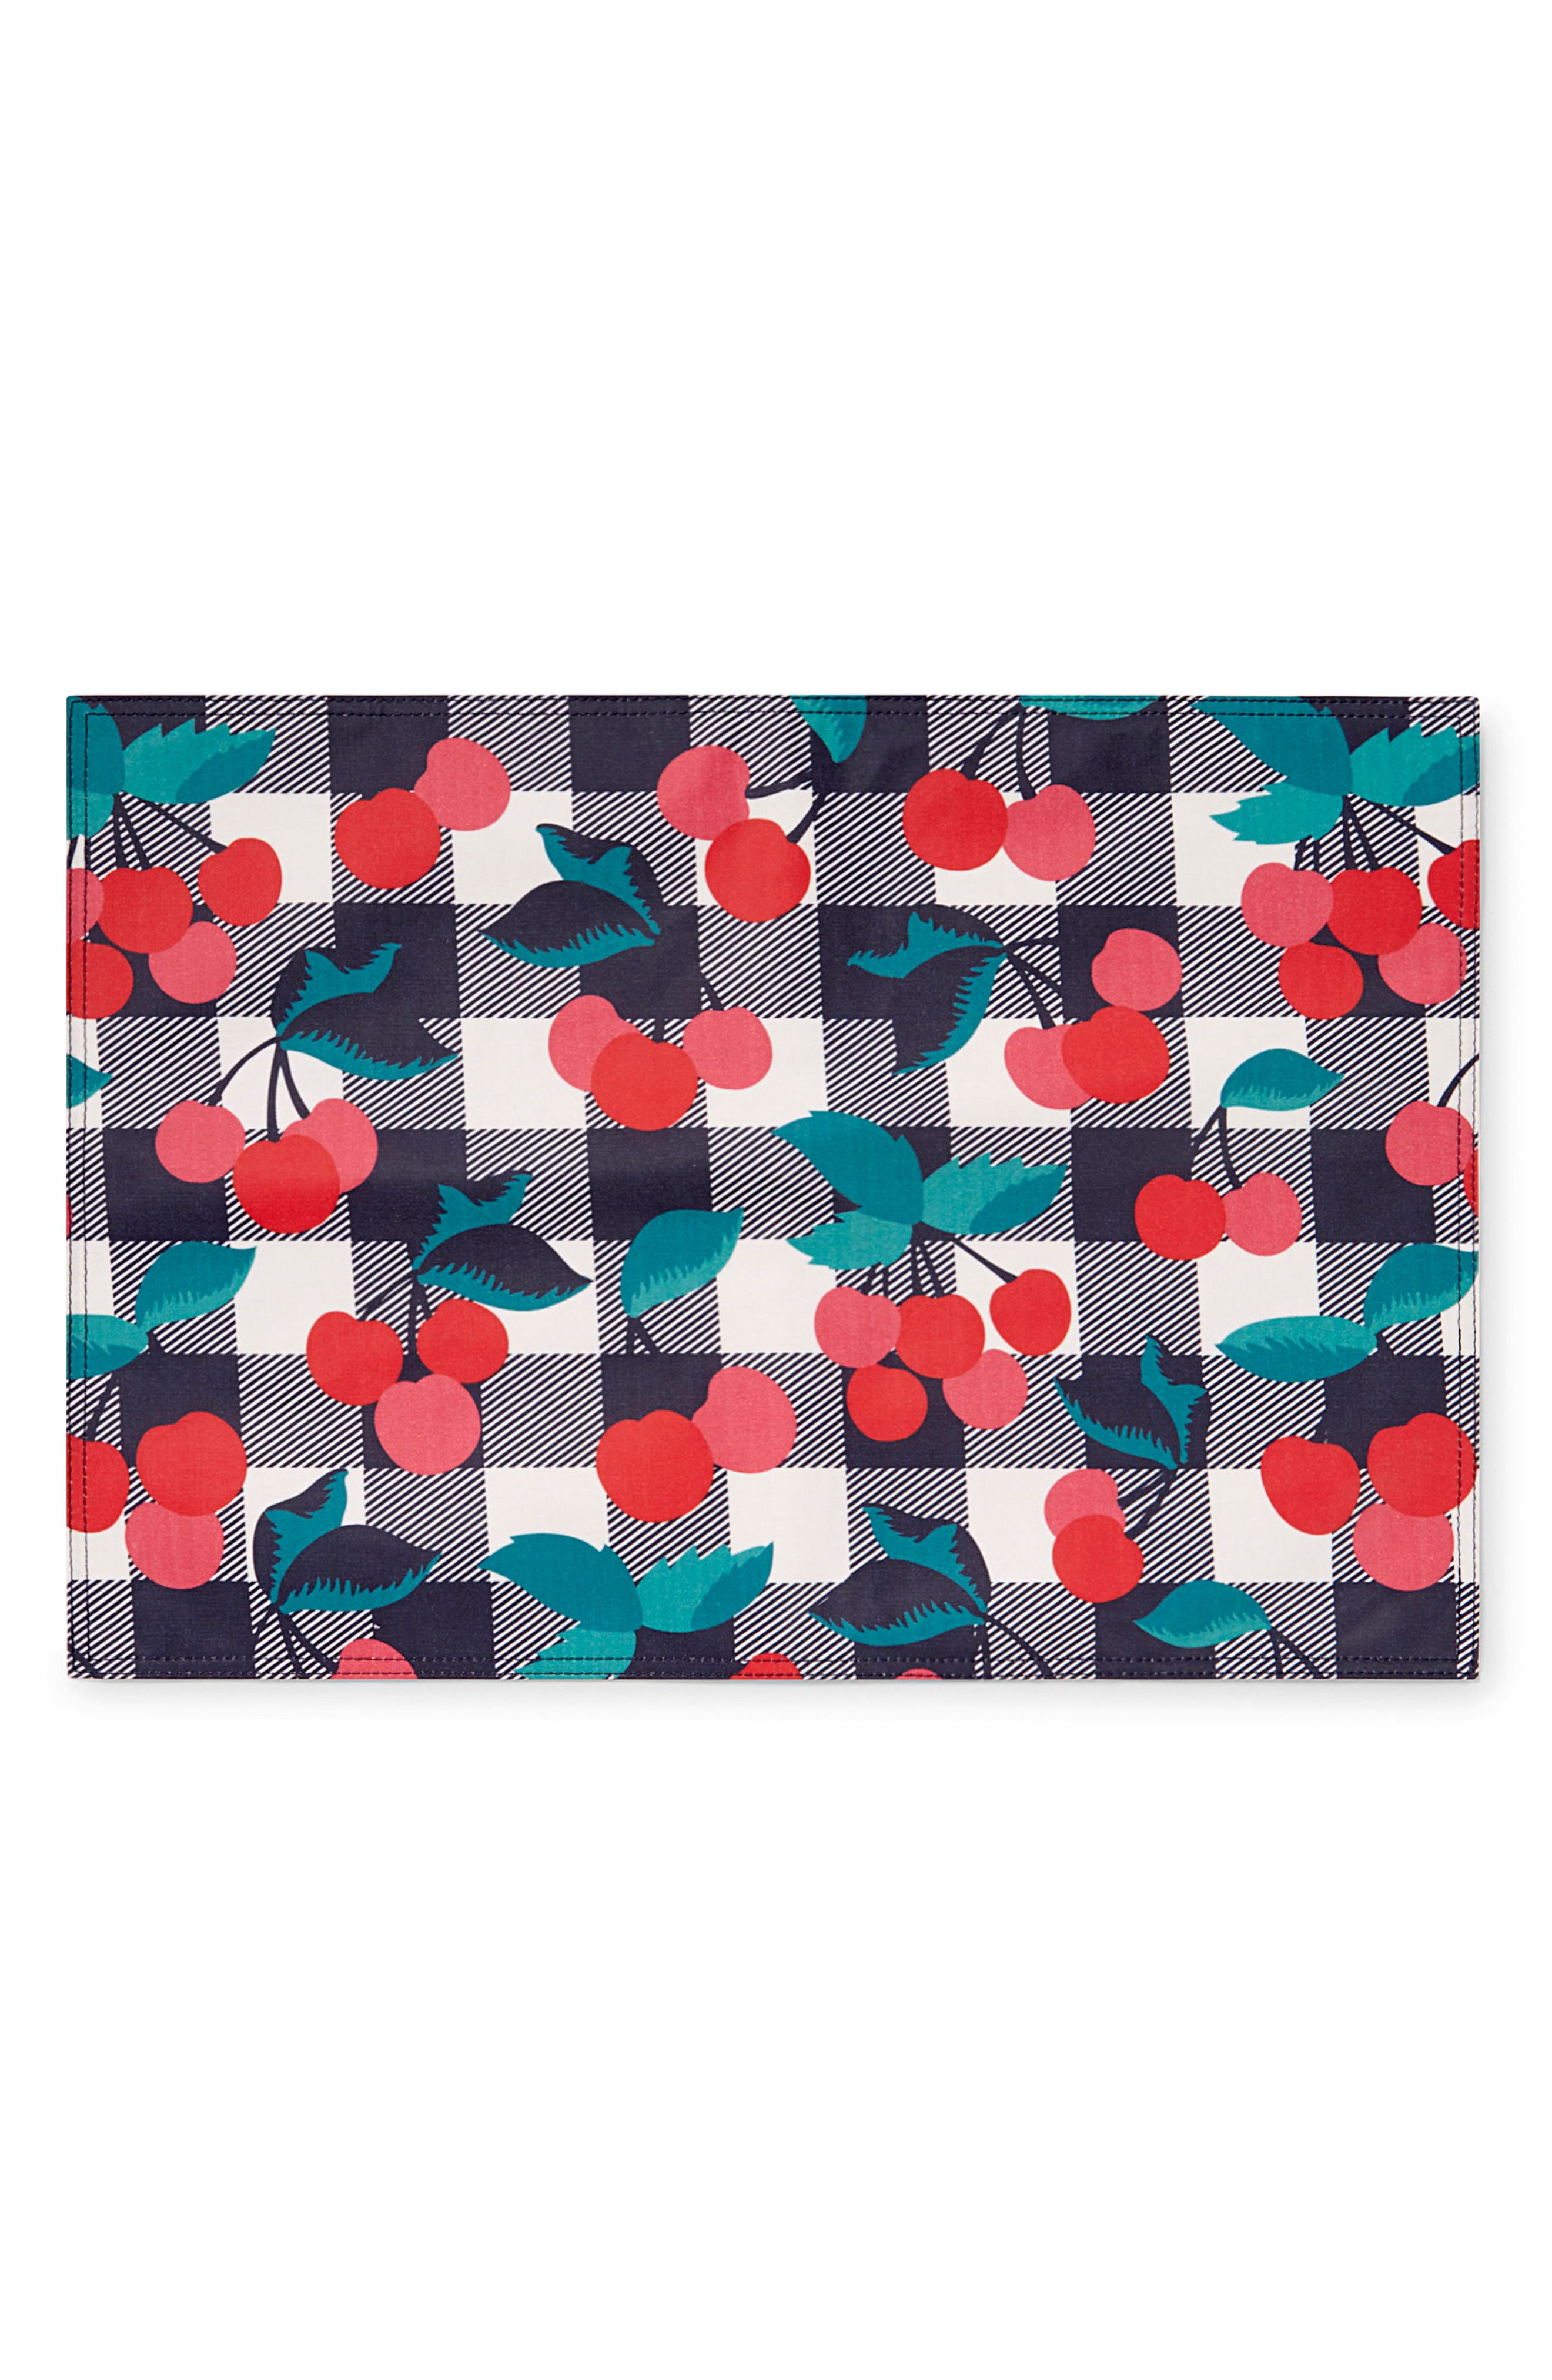 Set of 4 Cherry Print Placemats,                         Main,                         color, 600